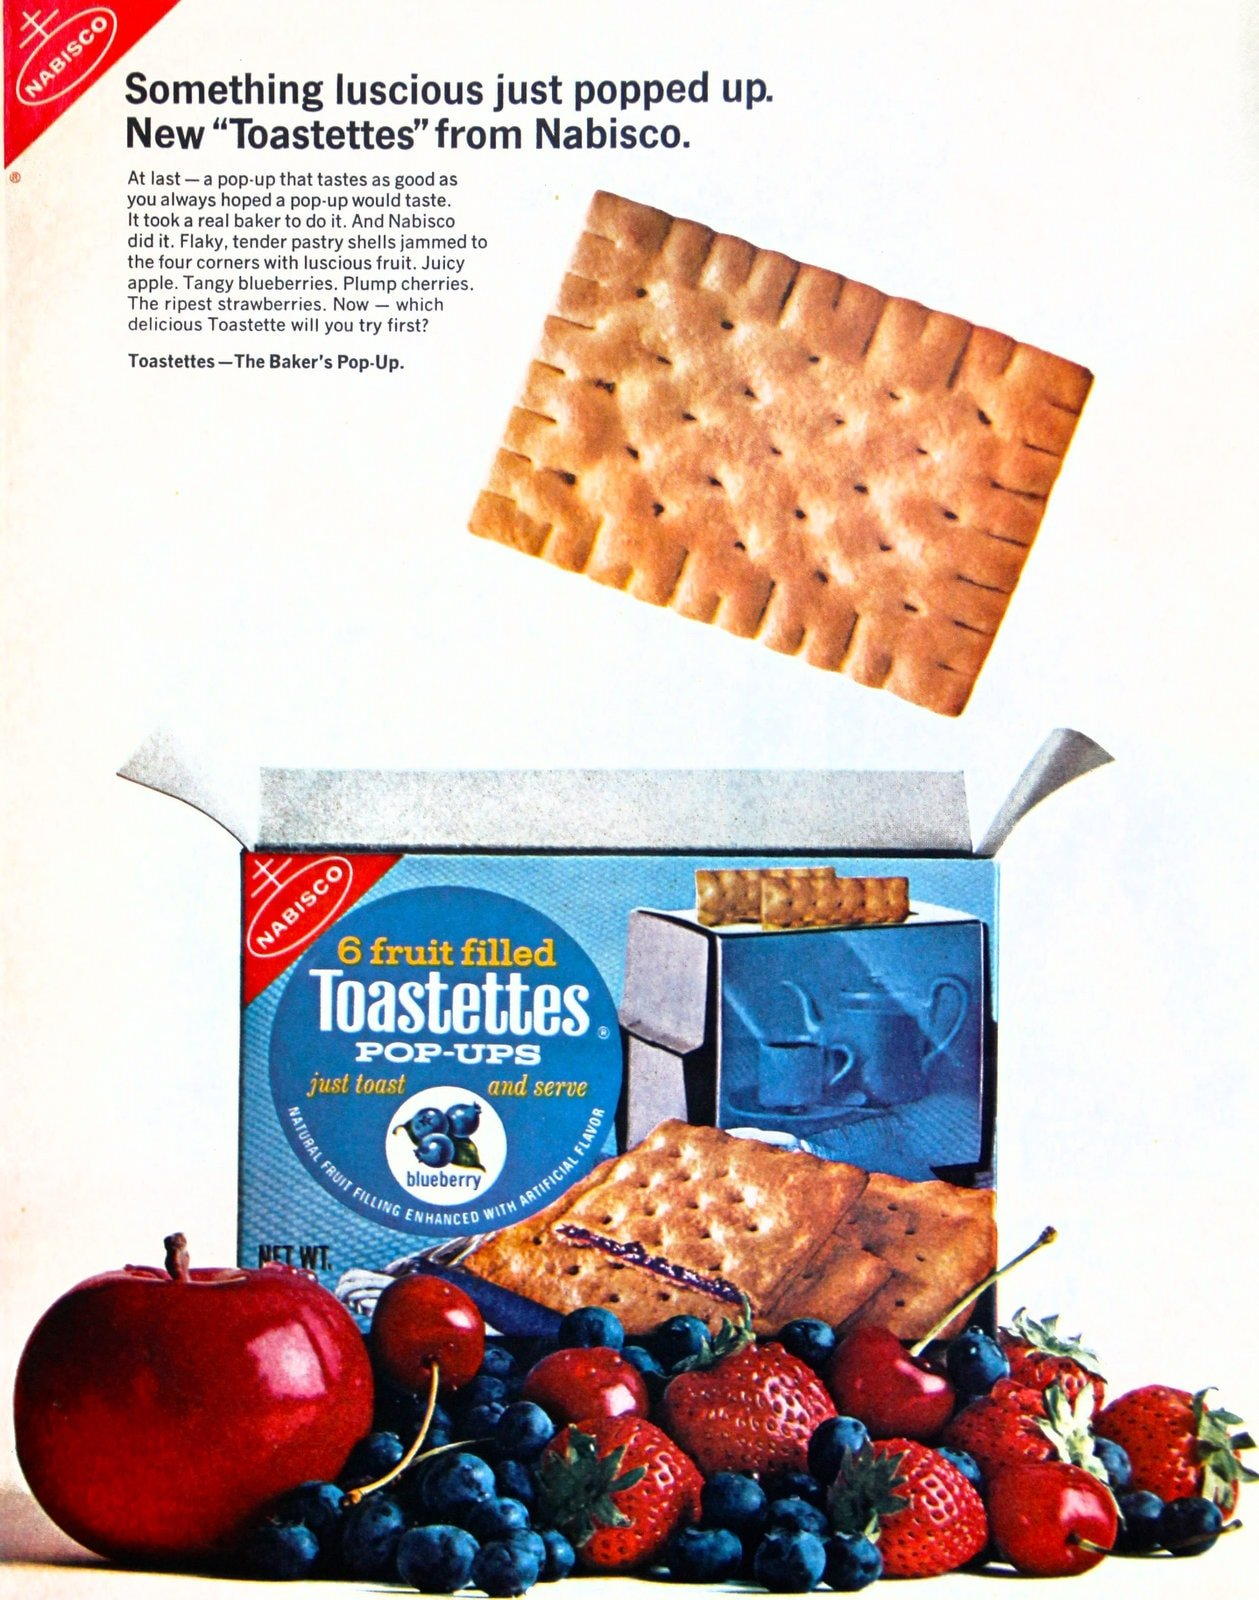 Toastettes pop-ups toaster pastries from the 1960s